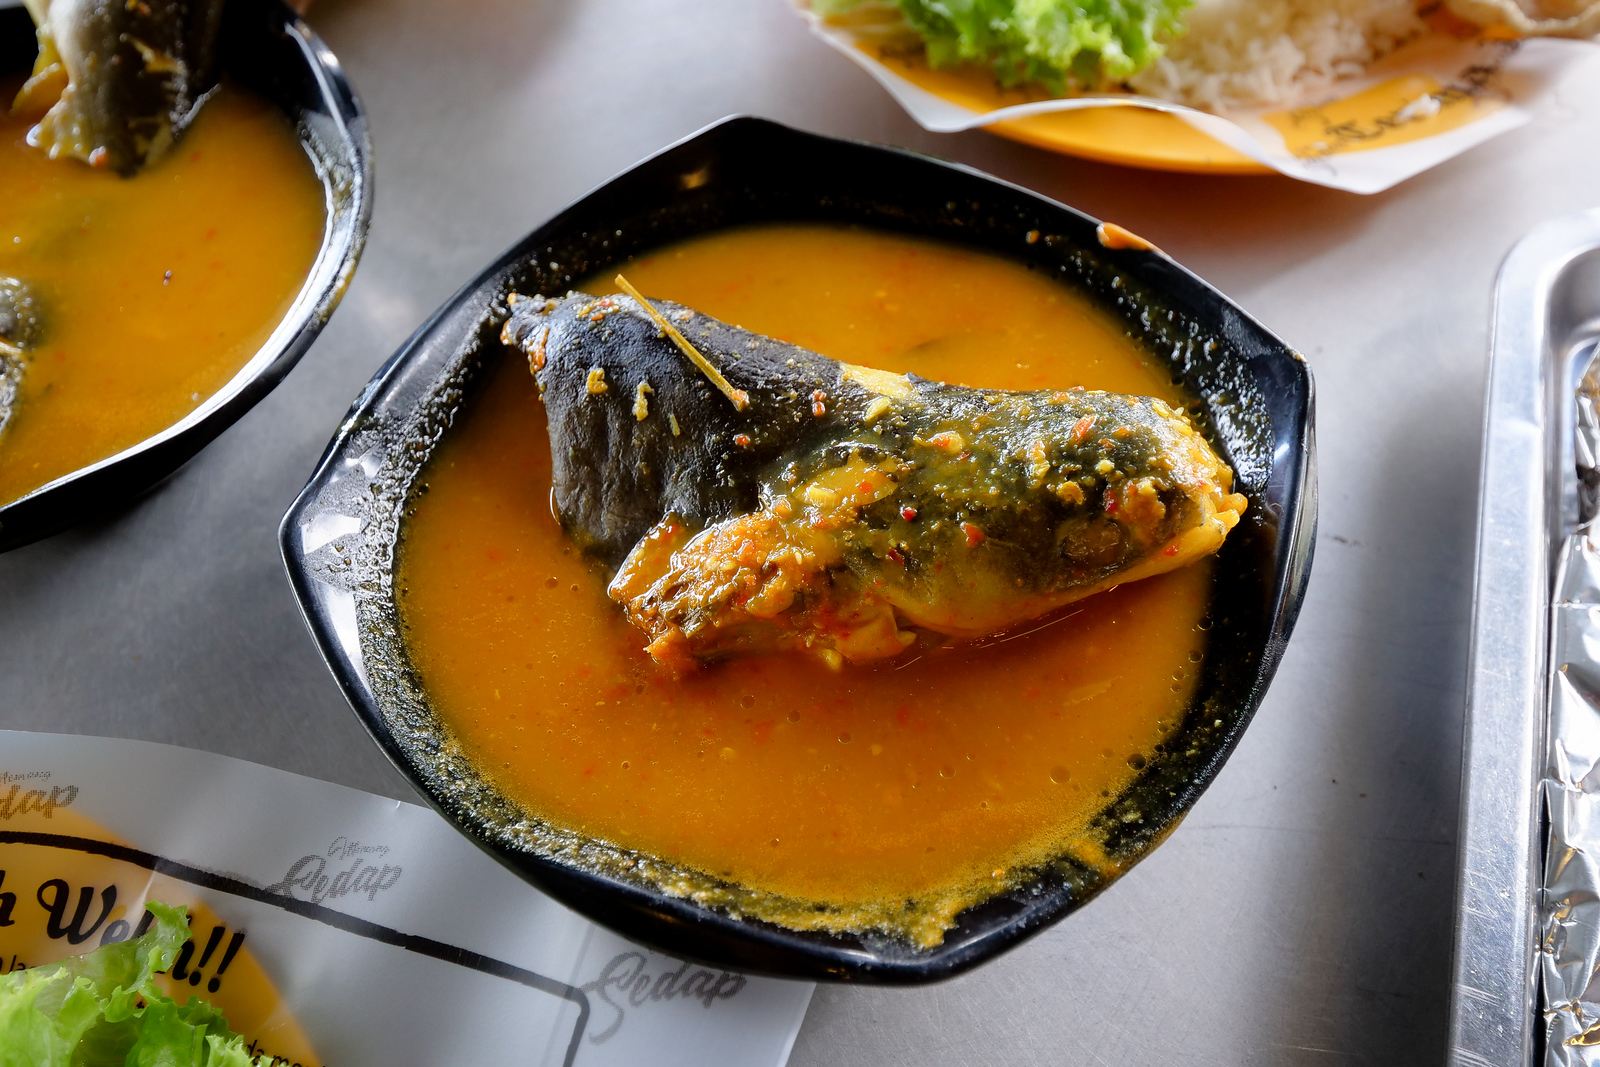 Tempoyak is a food worth traveling to eat